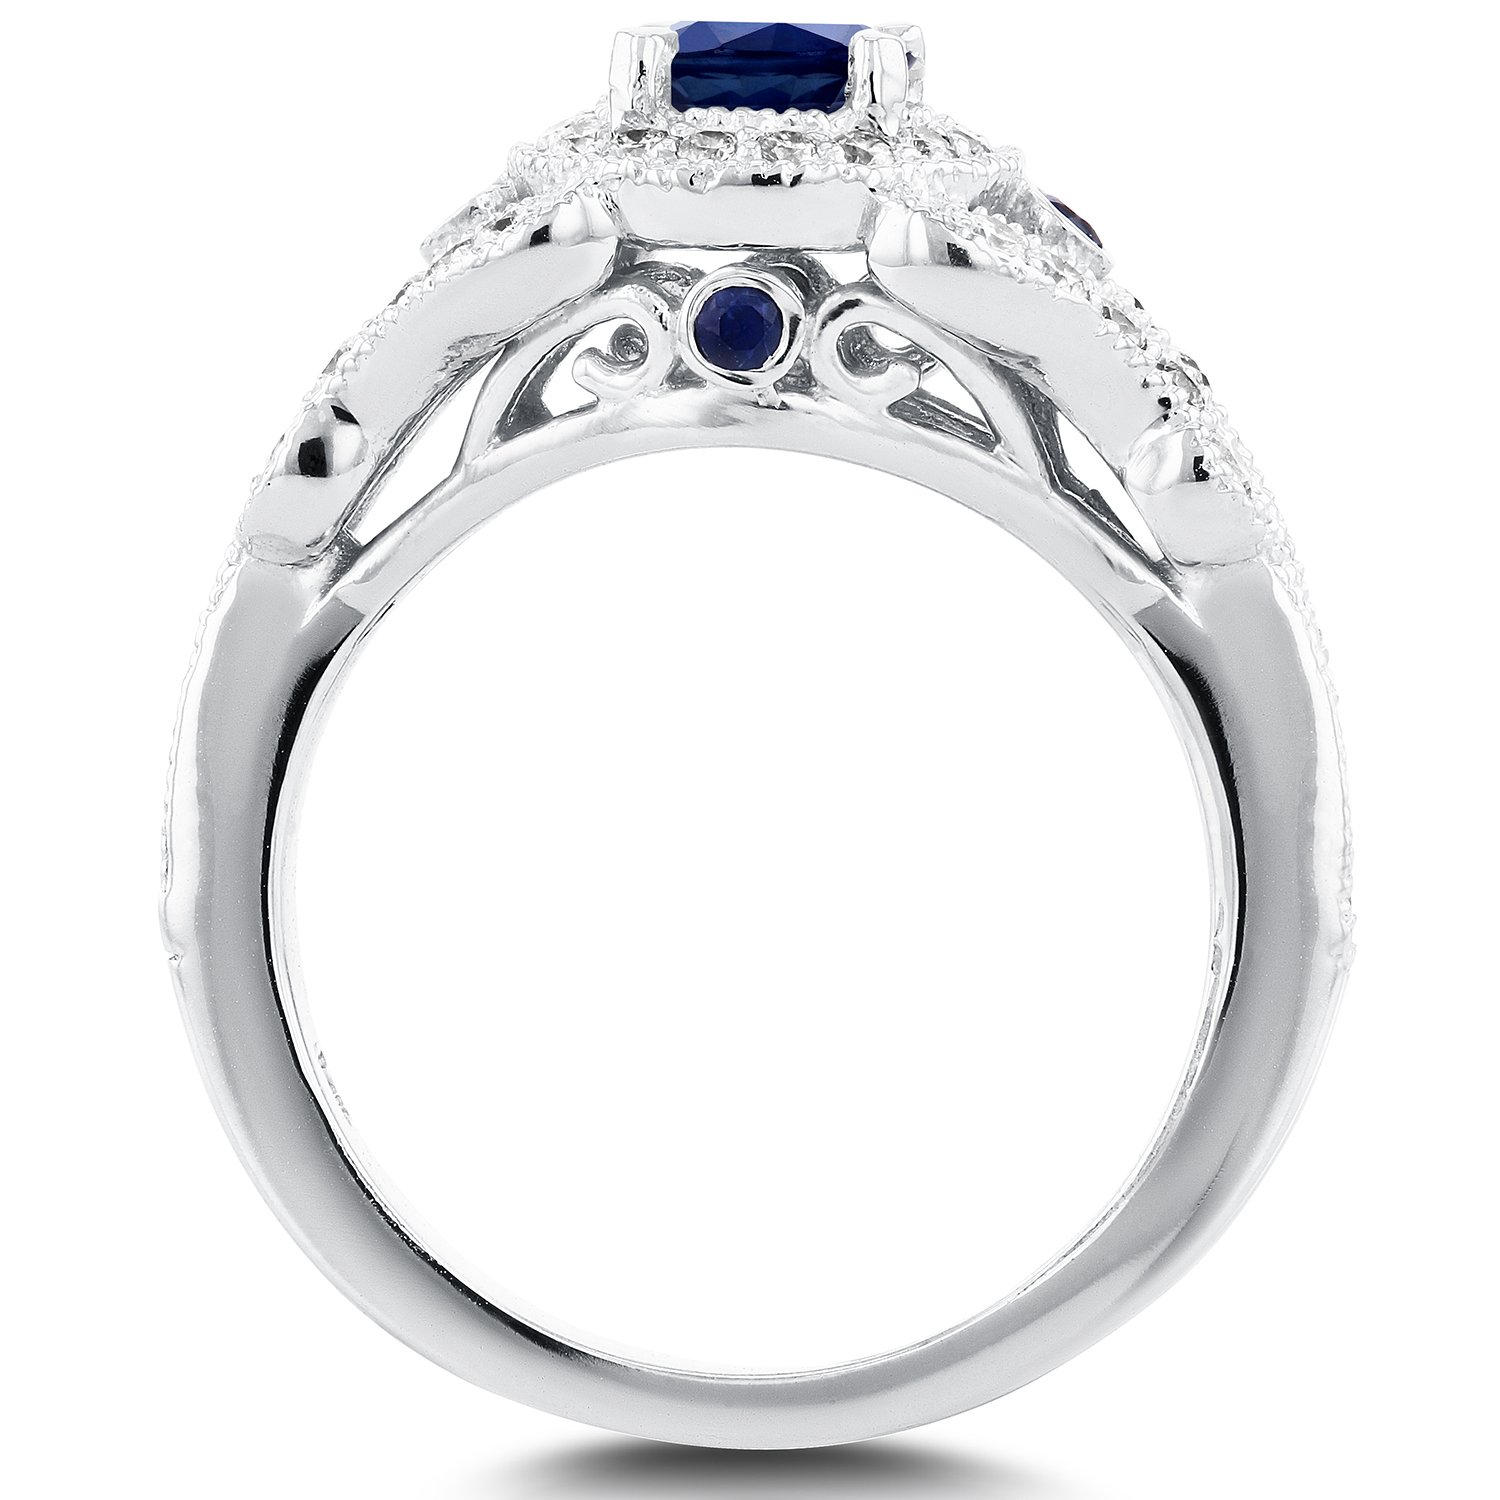 Antique Milgrain Sapphire and Diamond Engagement Ring 1 Carat (ctw) in 14k White Gold, Size 7 by Kobelli (Image #2)